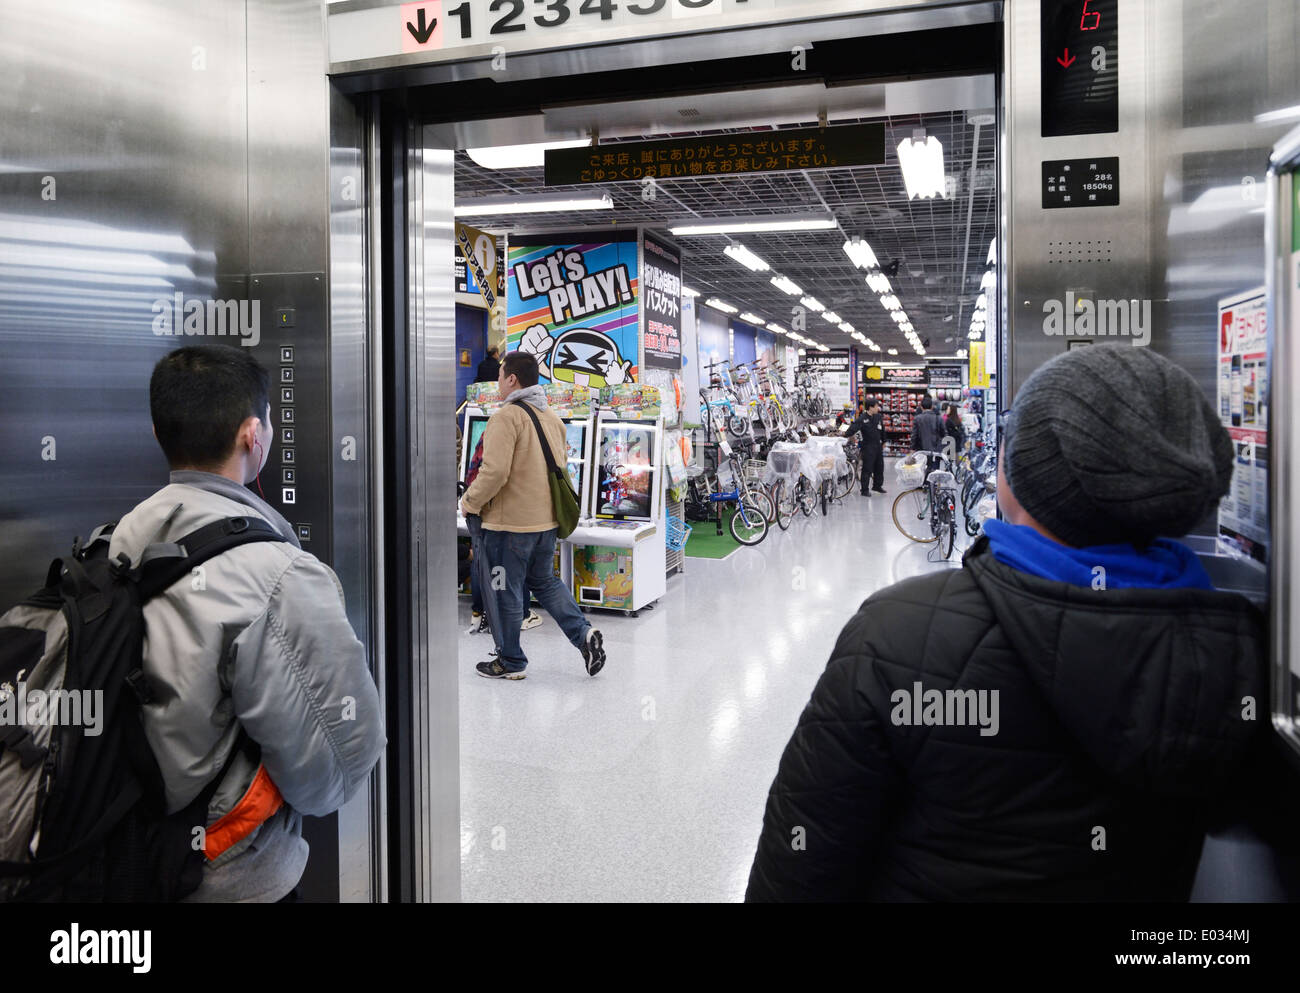 Duisburg Germany December 17 2016 Unknown People Entering And People Inside An Elevator In A Store In Tokyo Japan Stock